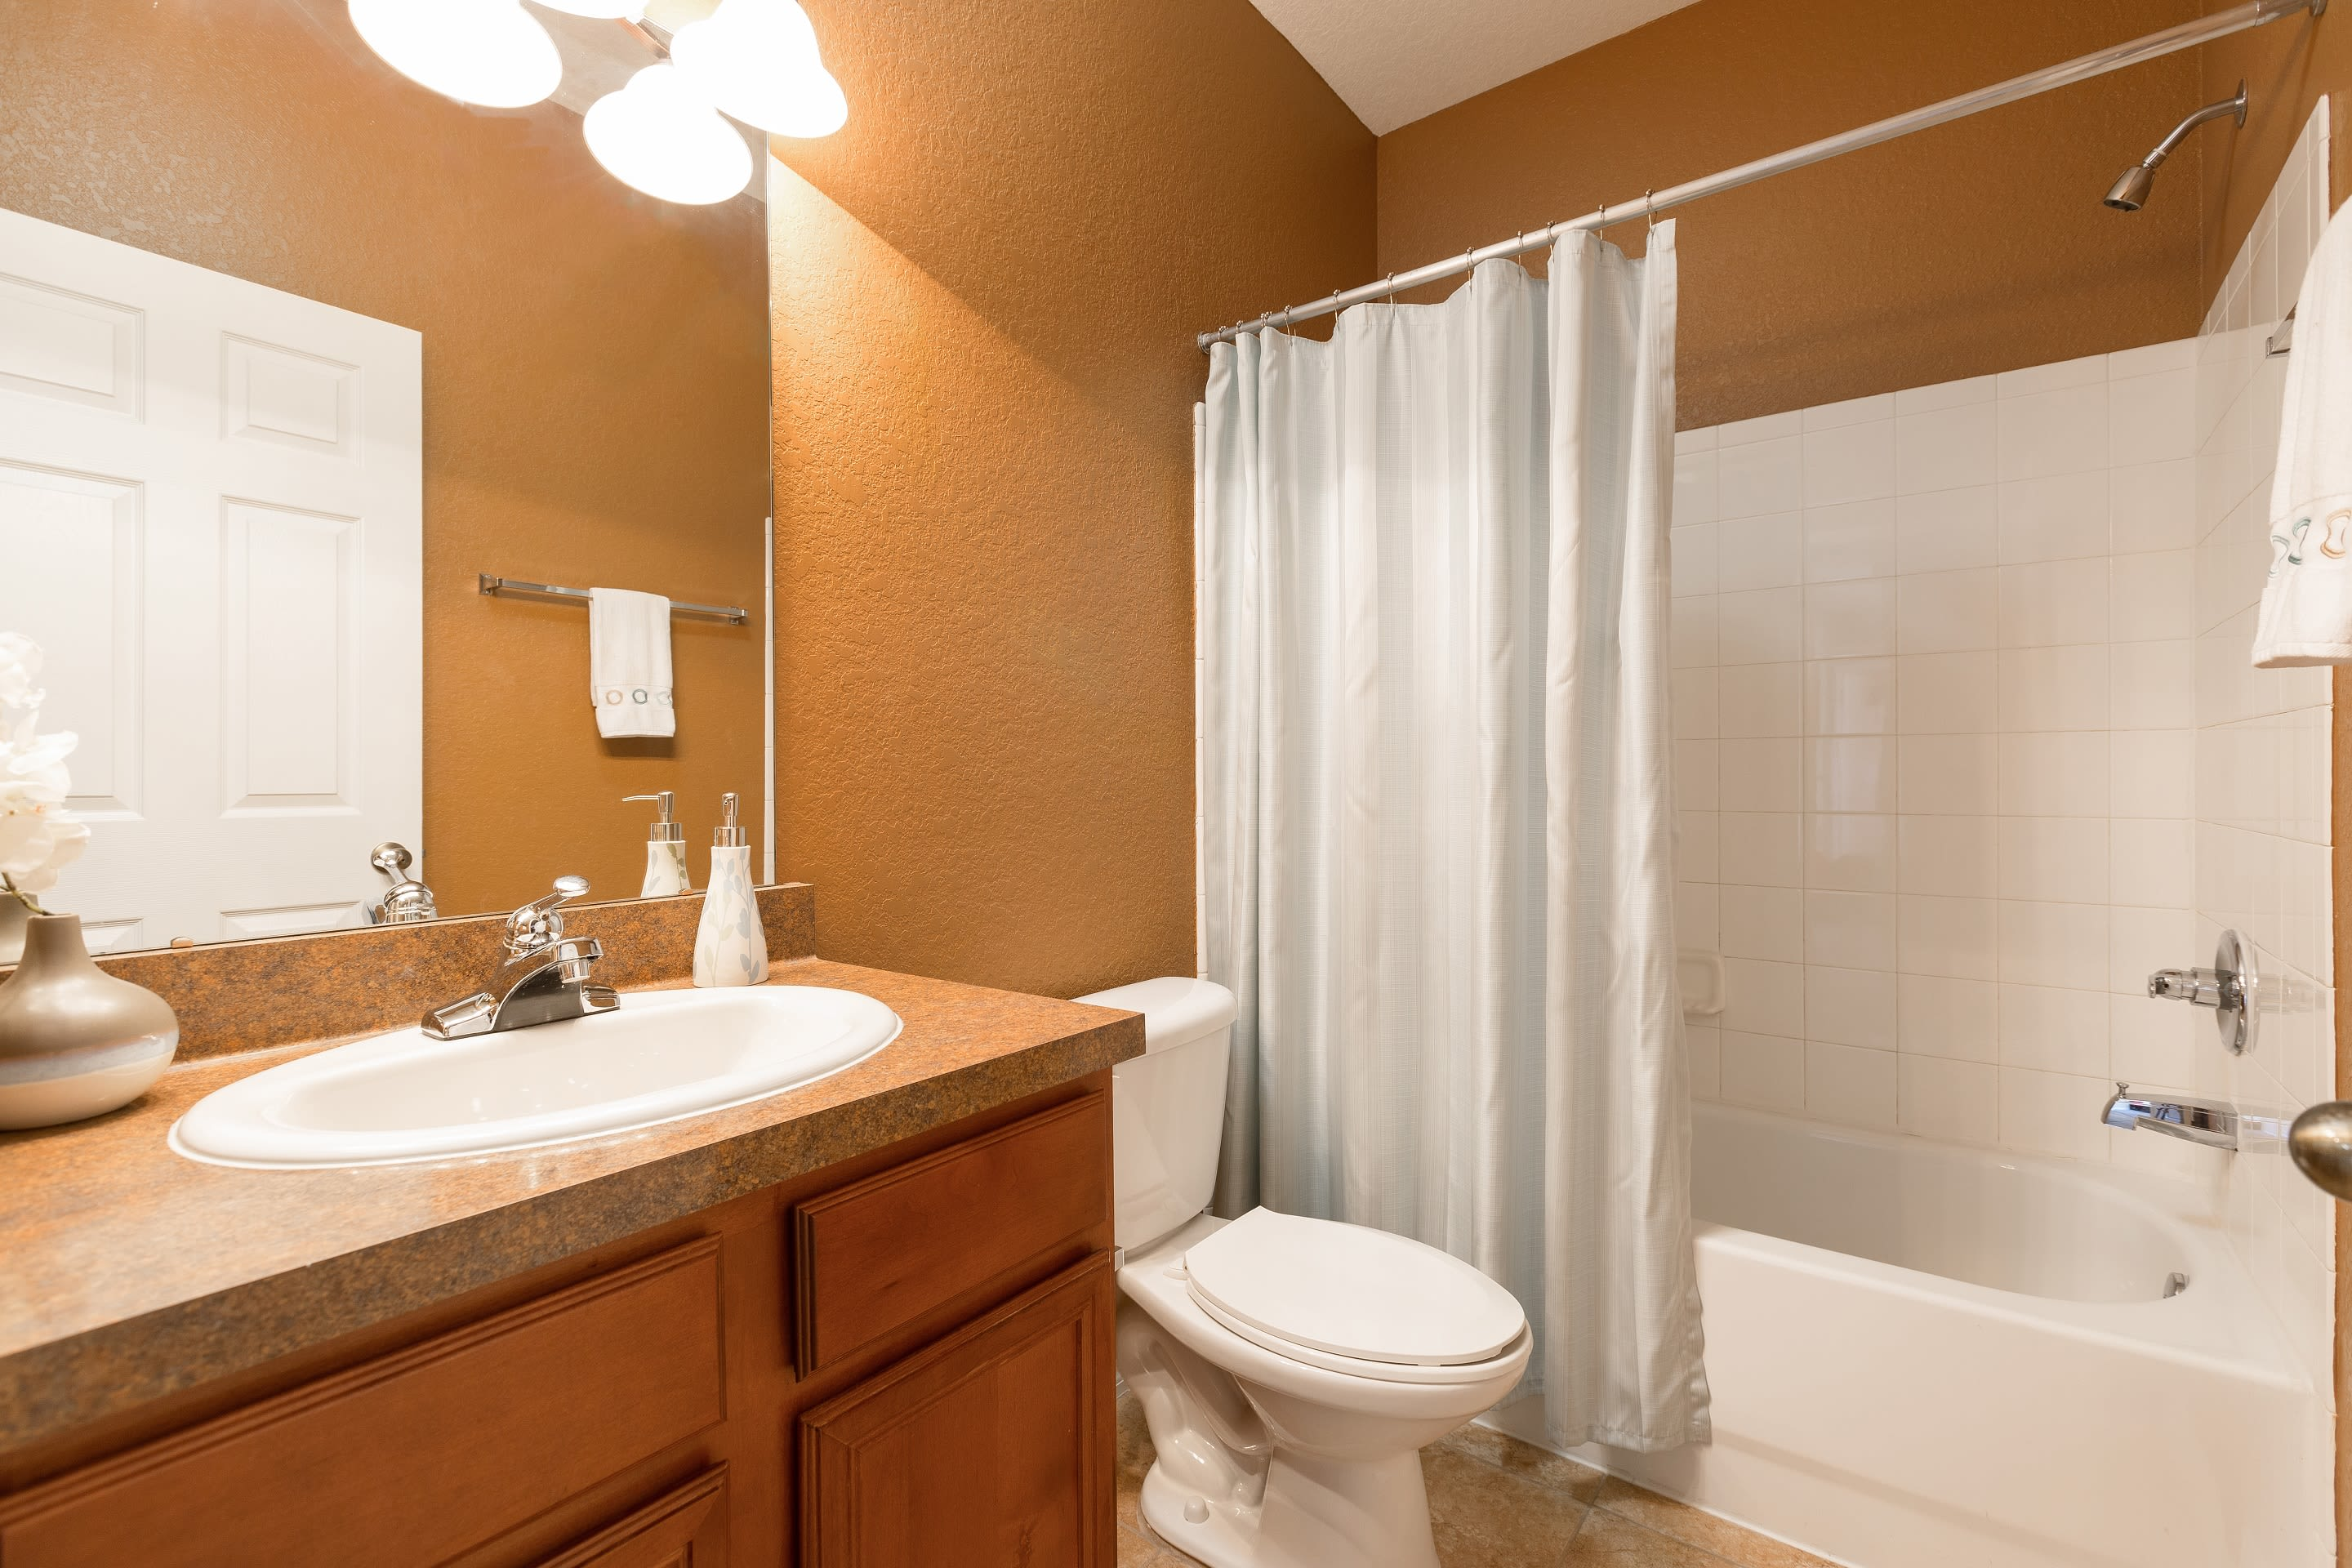 Modern bathroom at The Aspect in Kissimmee, Florida